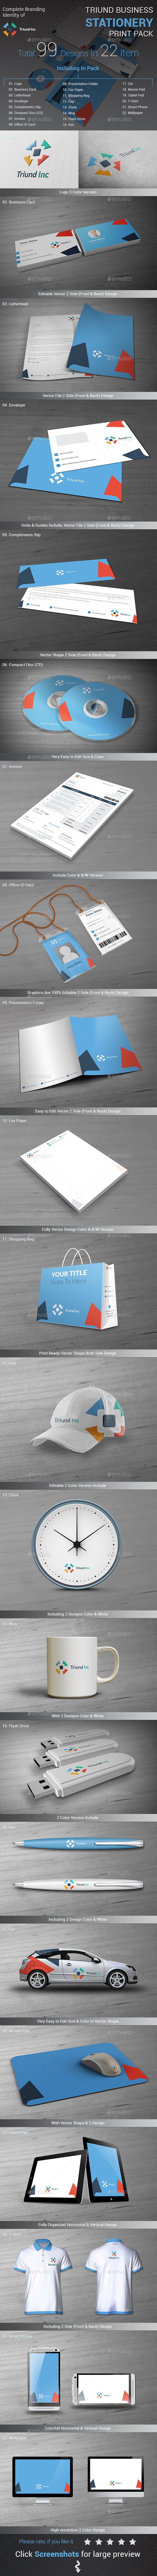 GraphicRiver Triund Business Stationery Print Pack 8960089